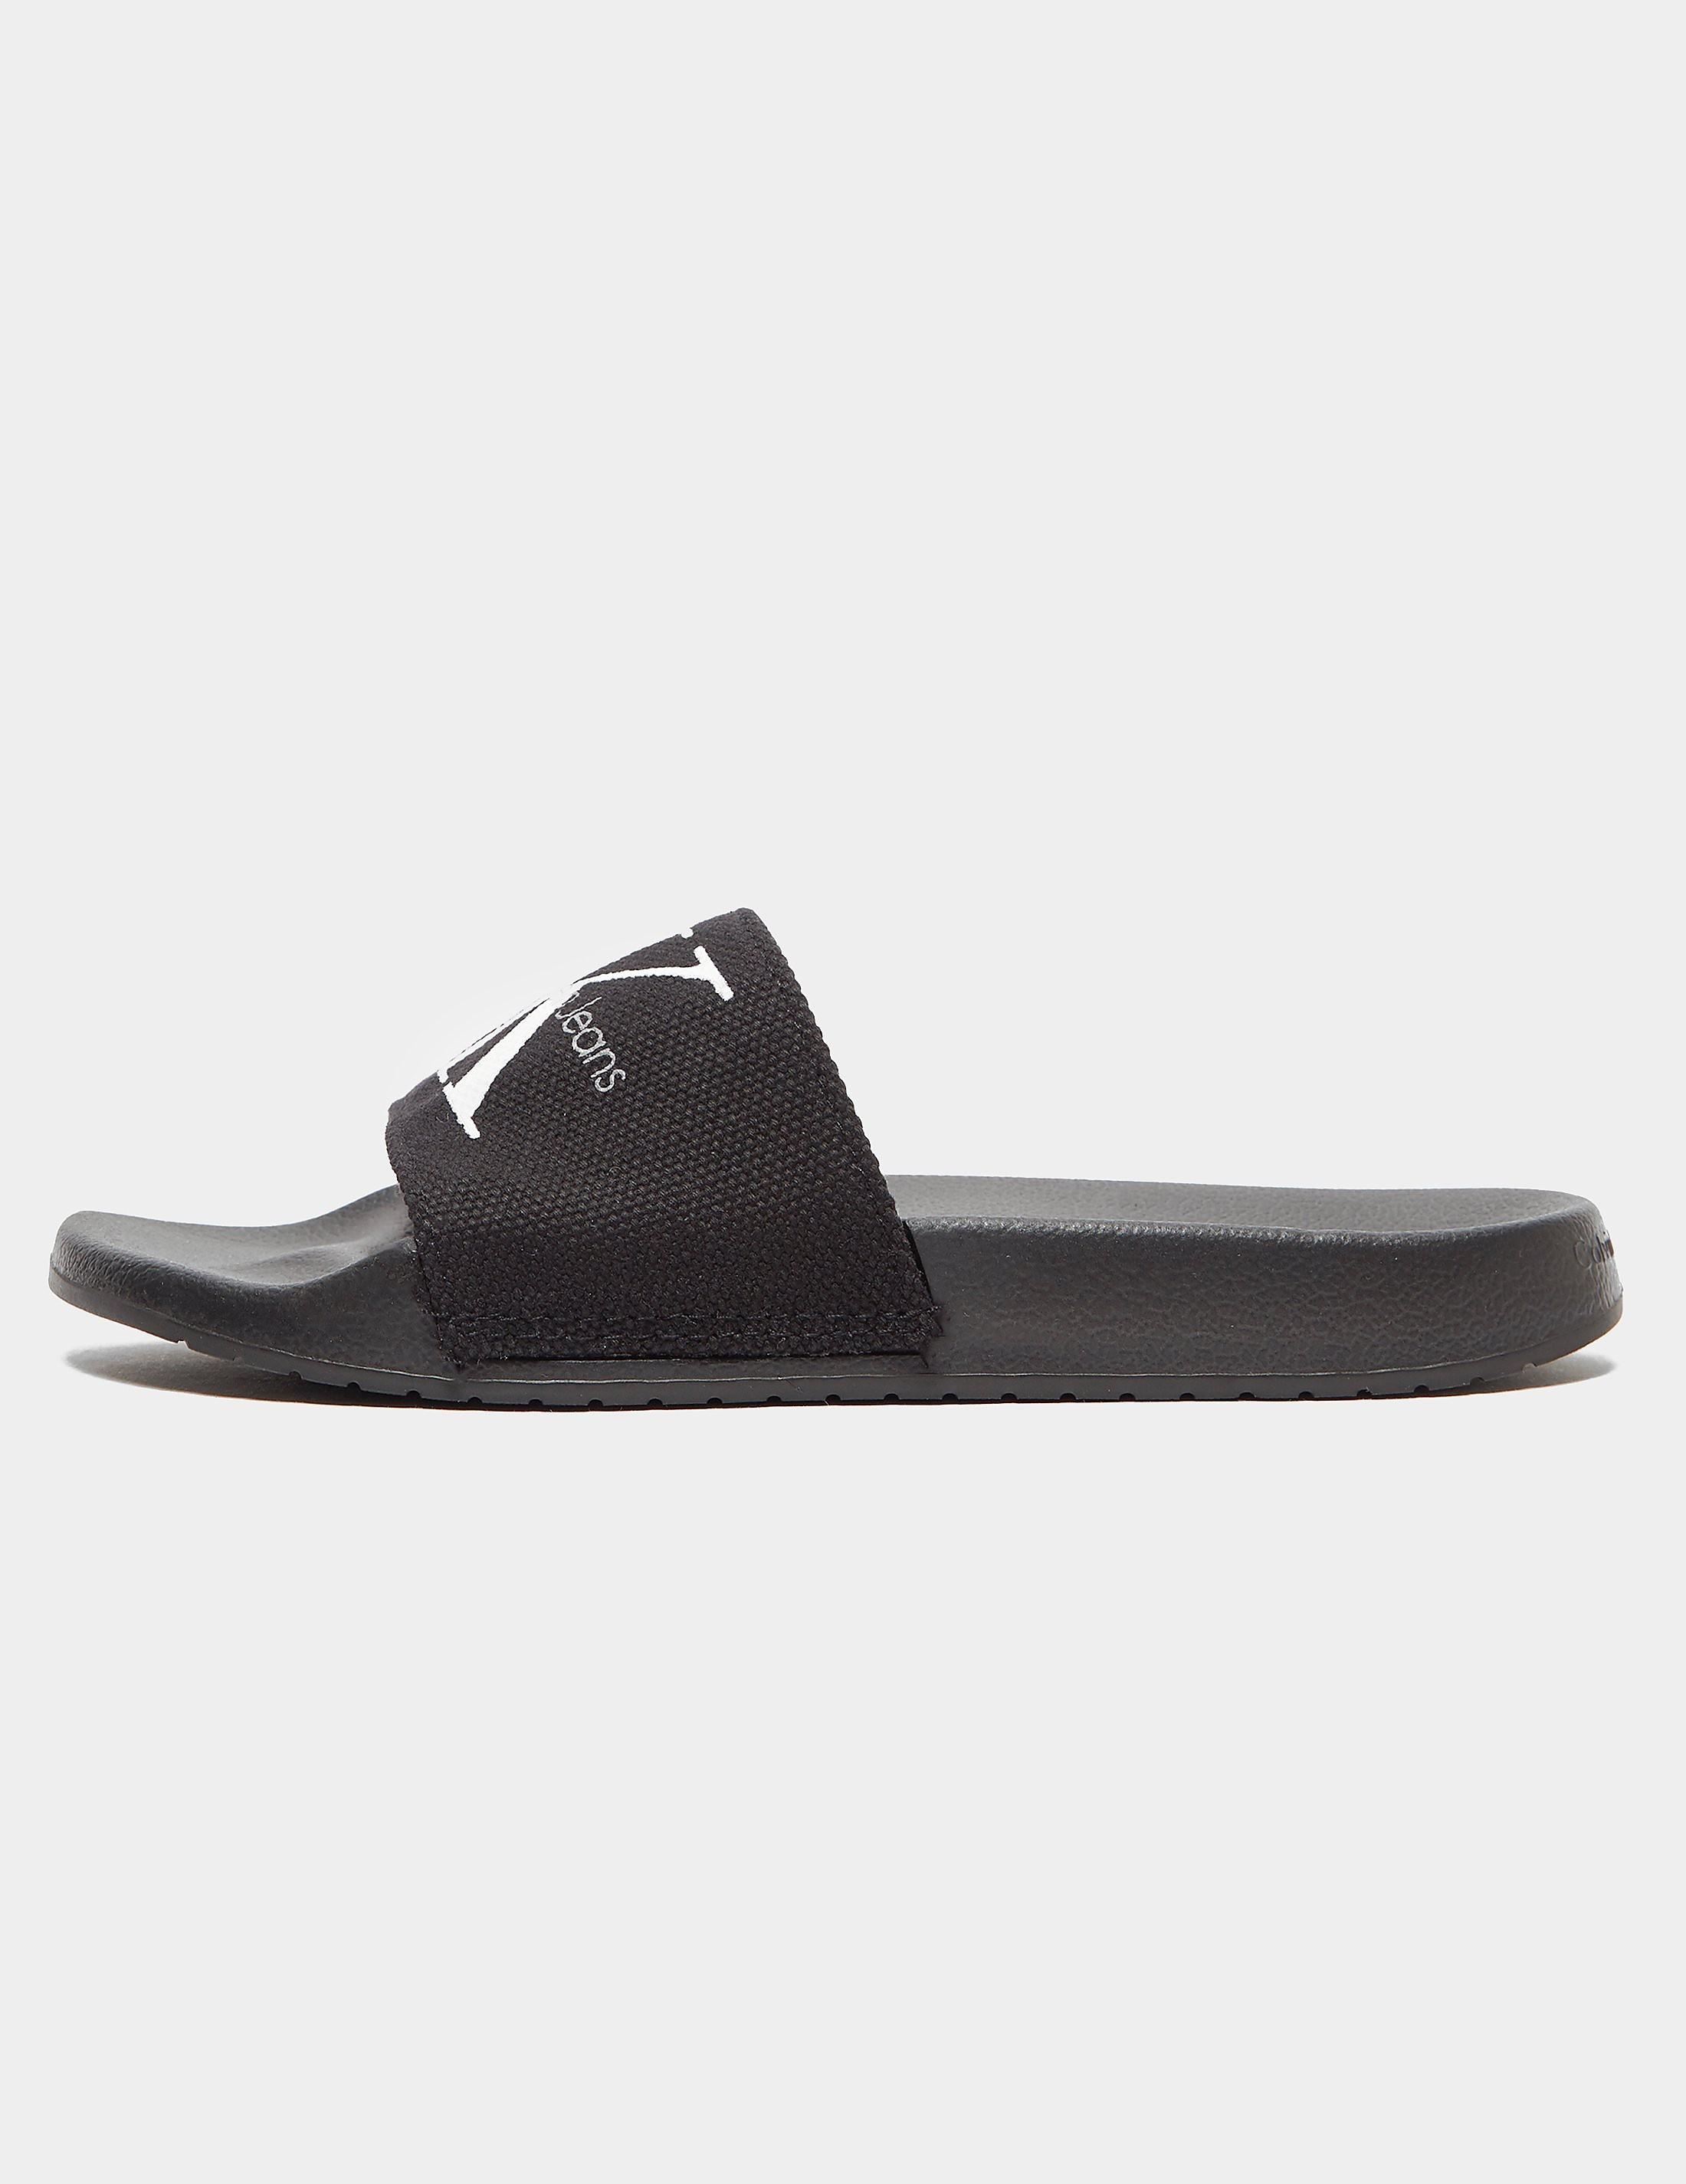 Calvin Klein Chantal Slides